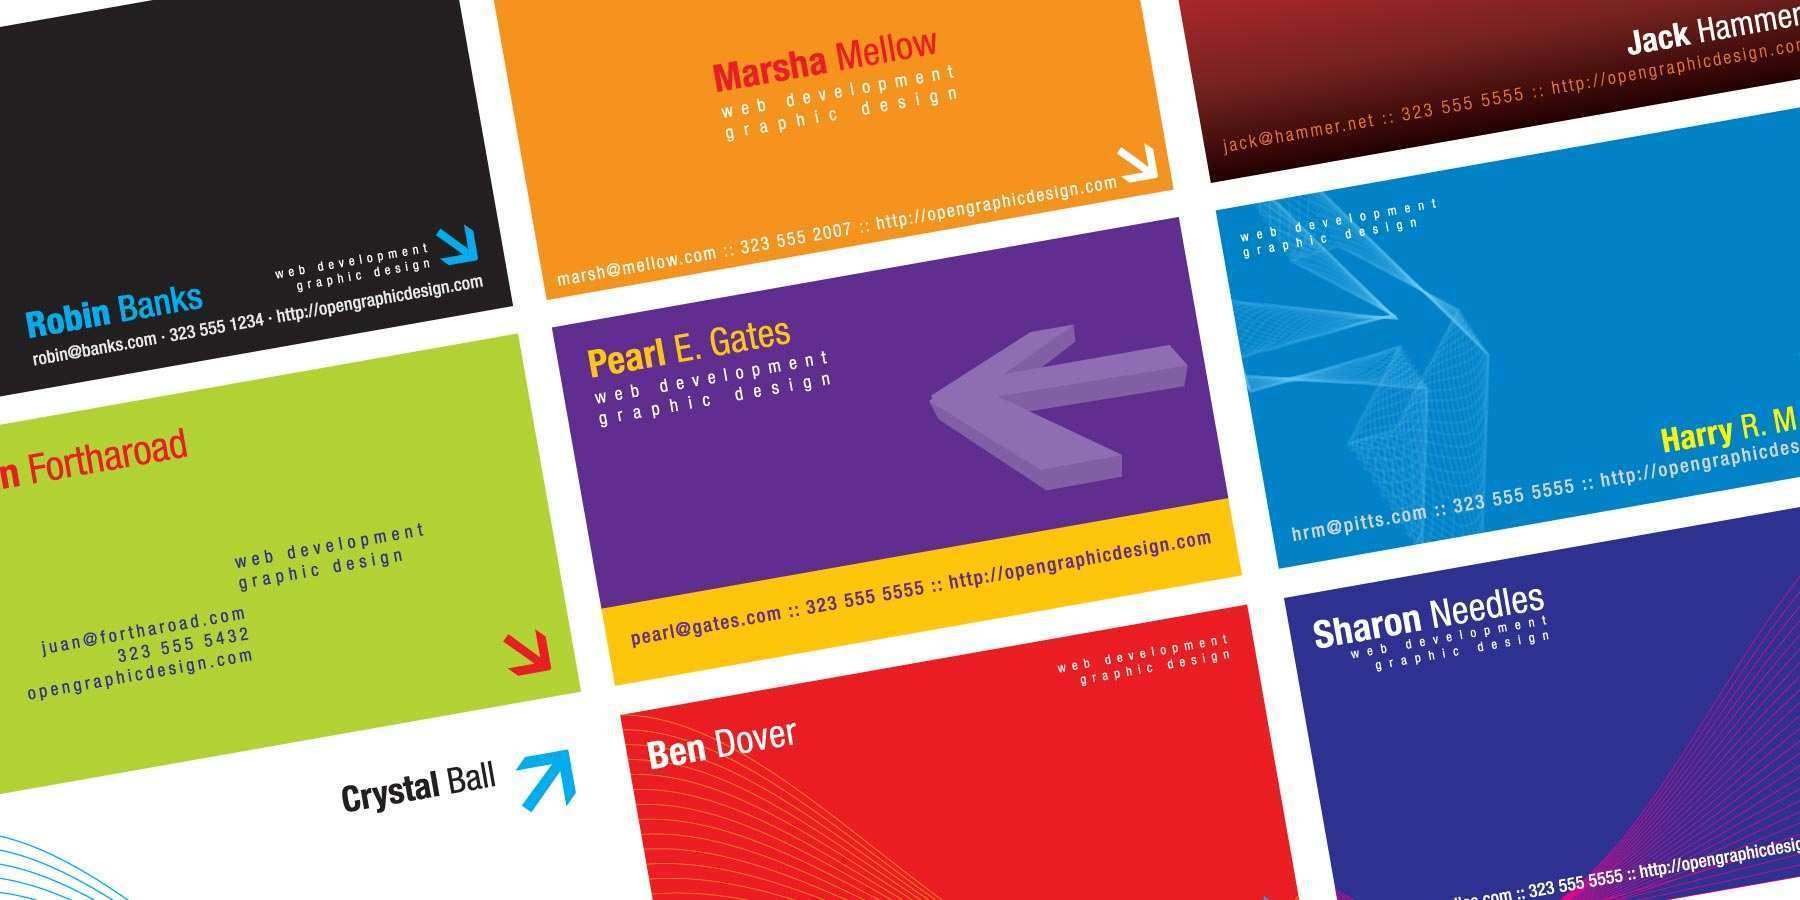 18 Customize Business Card Template For Illustrator Free For Free with Business Card Template For Illustrator Free